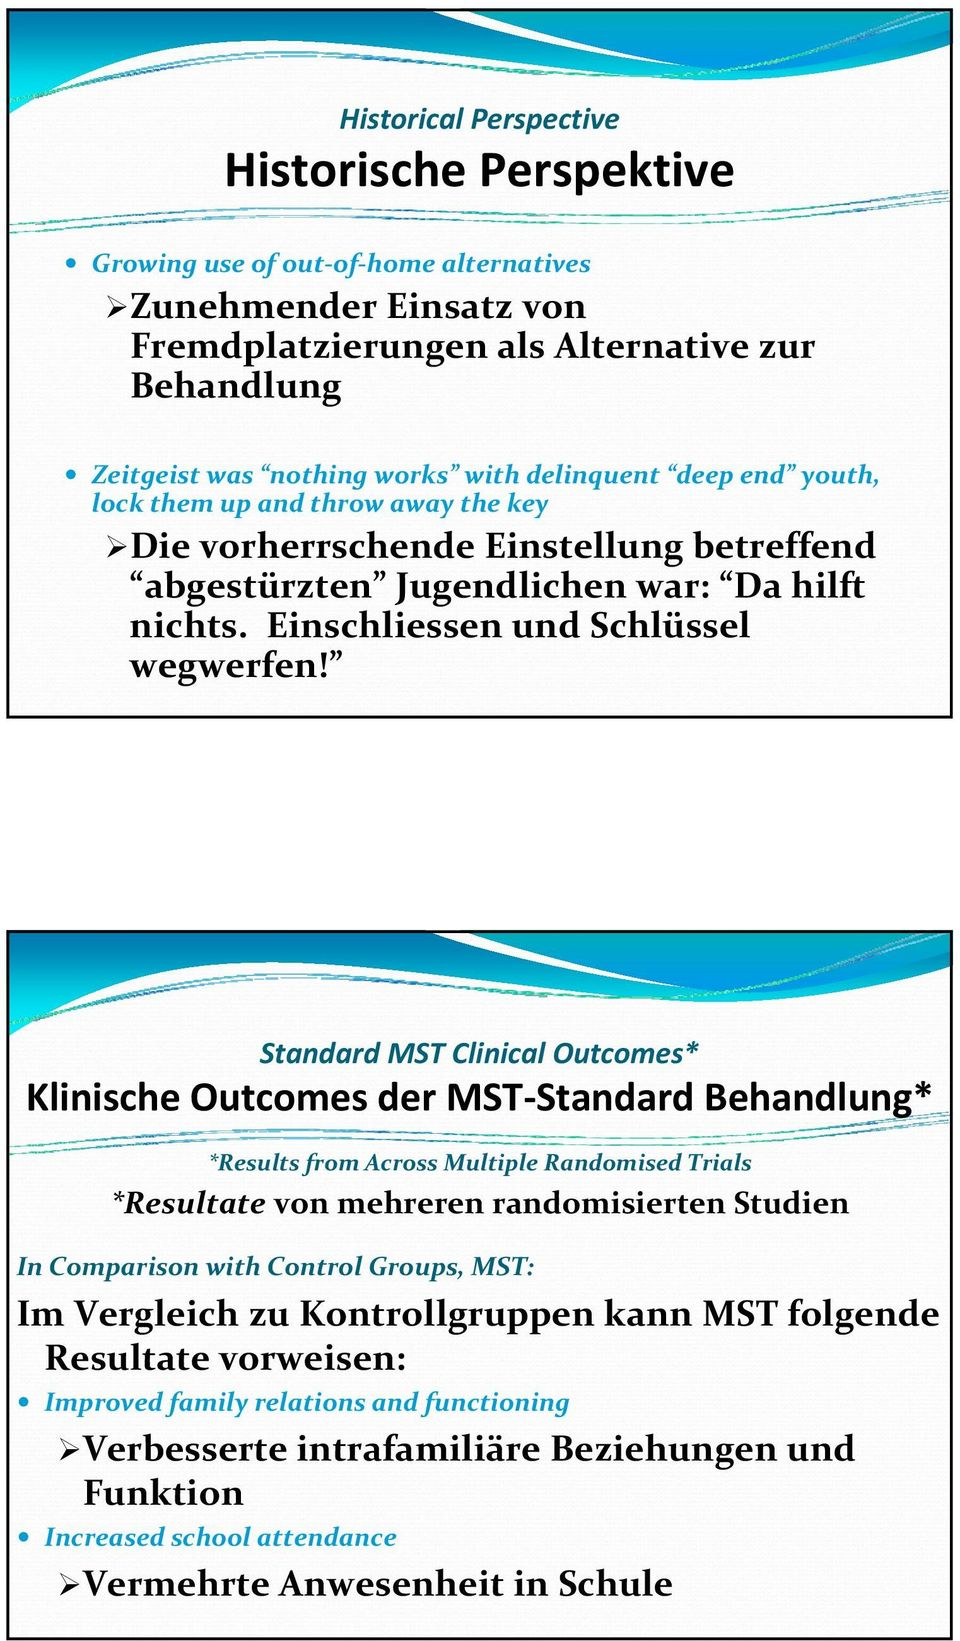 Standard MST Clinical Outcomes* Klinische Outcomes der MST Standard Behandlung* *Results from Across Multiple Randomised Trials *Resultate von mehreren randomisierten Studien In Comparison with